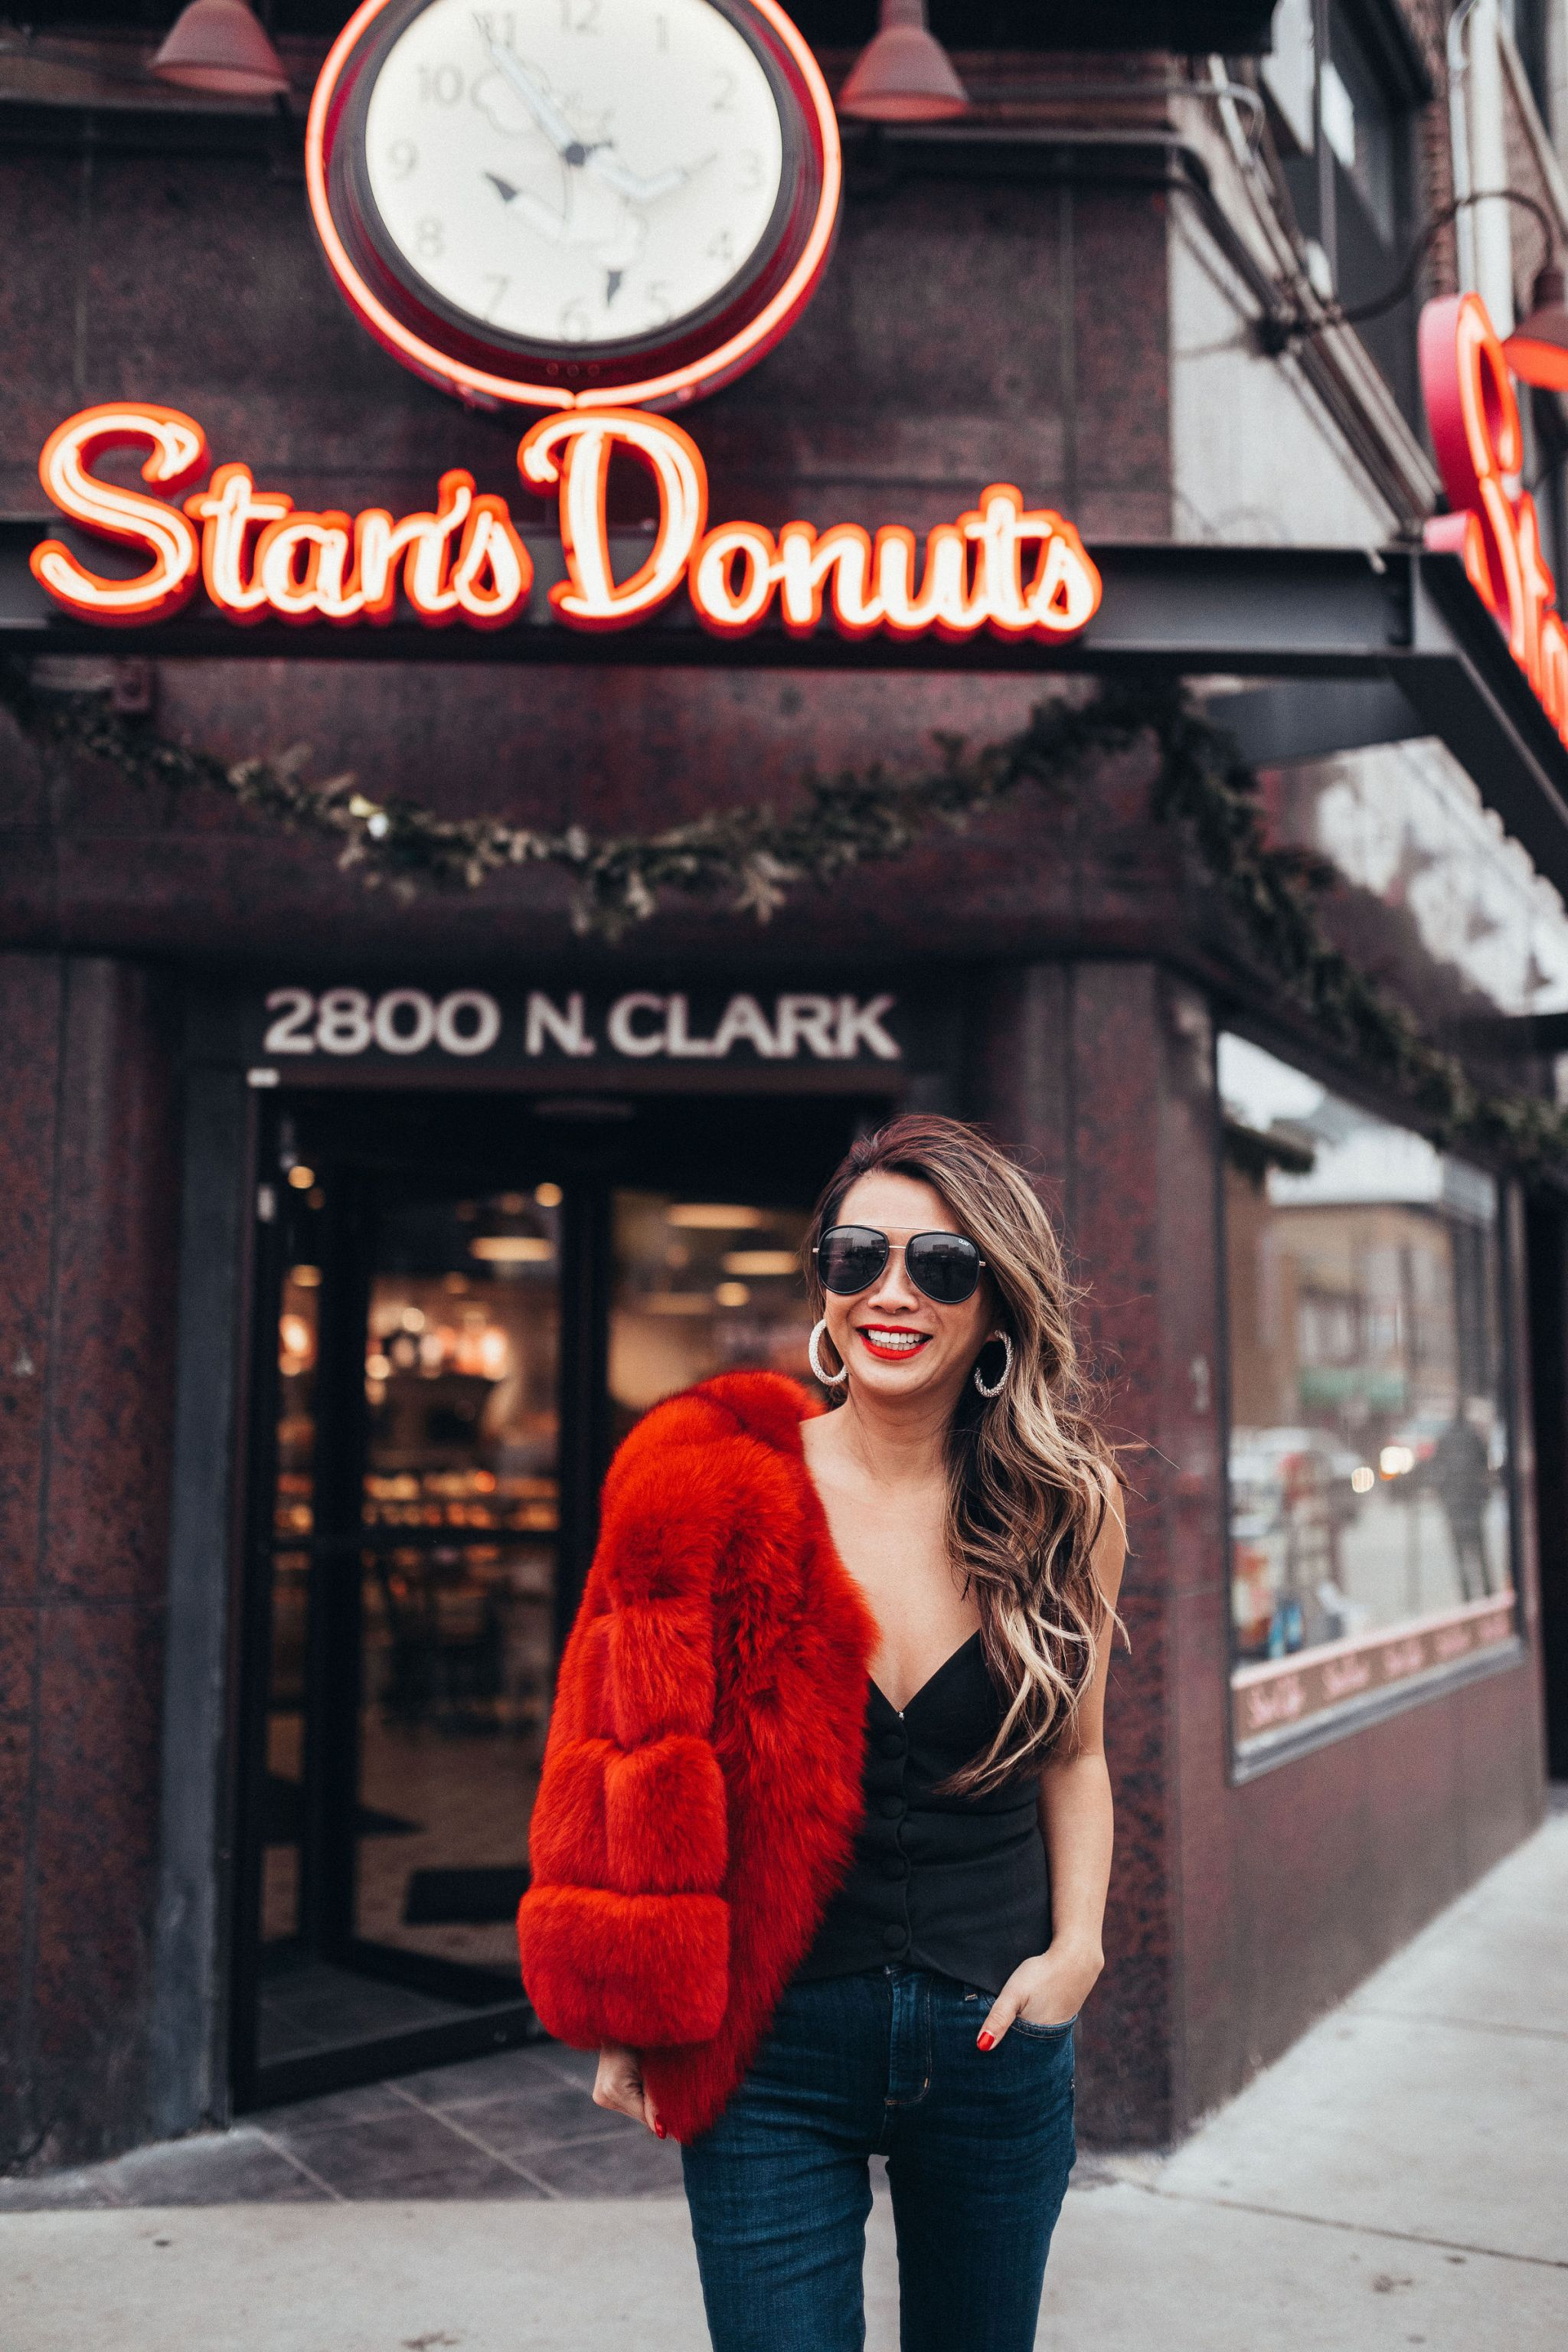 NBD Mikah Top, Revolve Corset Top, Jennifer Worman, GNO outfit, How to style a corset top, Chicago Fashion Blogger, Stan's donuts, Chicago Travel Blogger, Red Fur